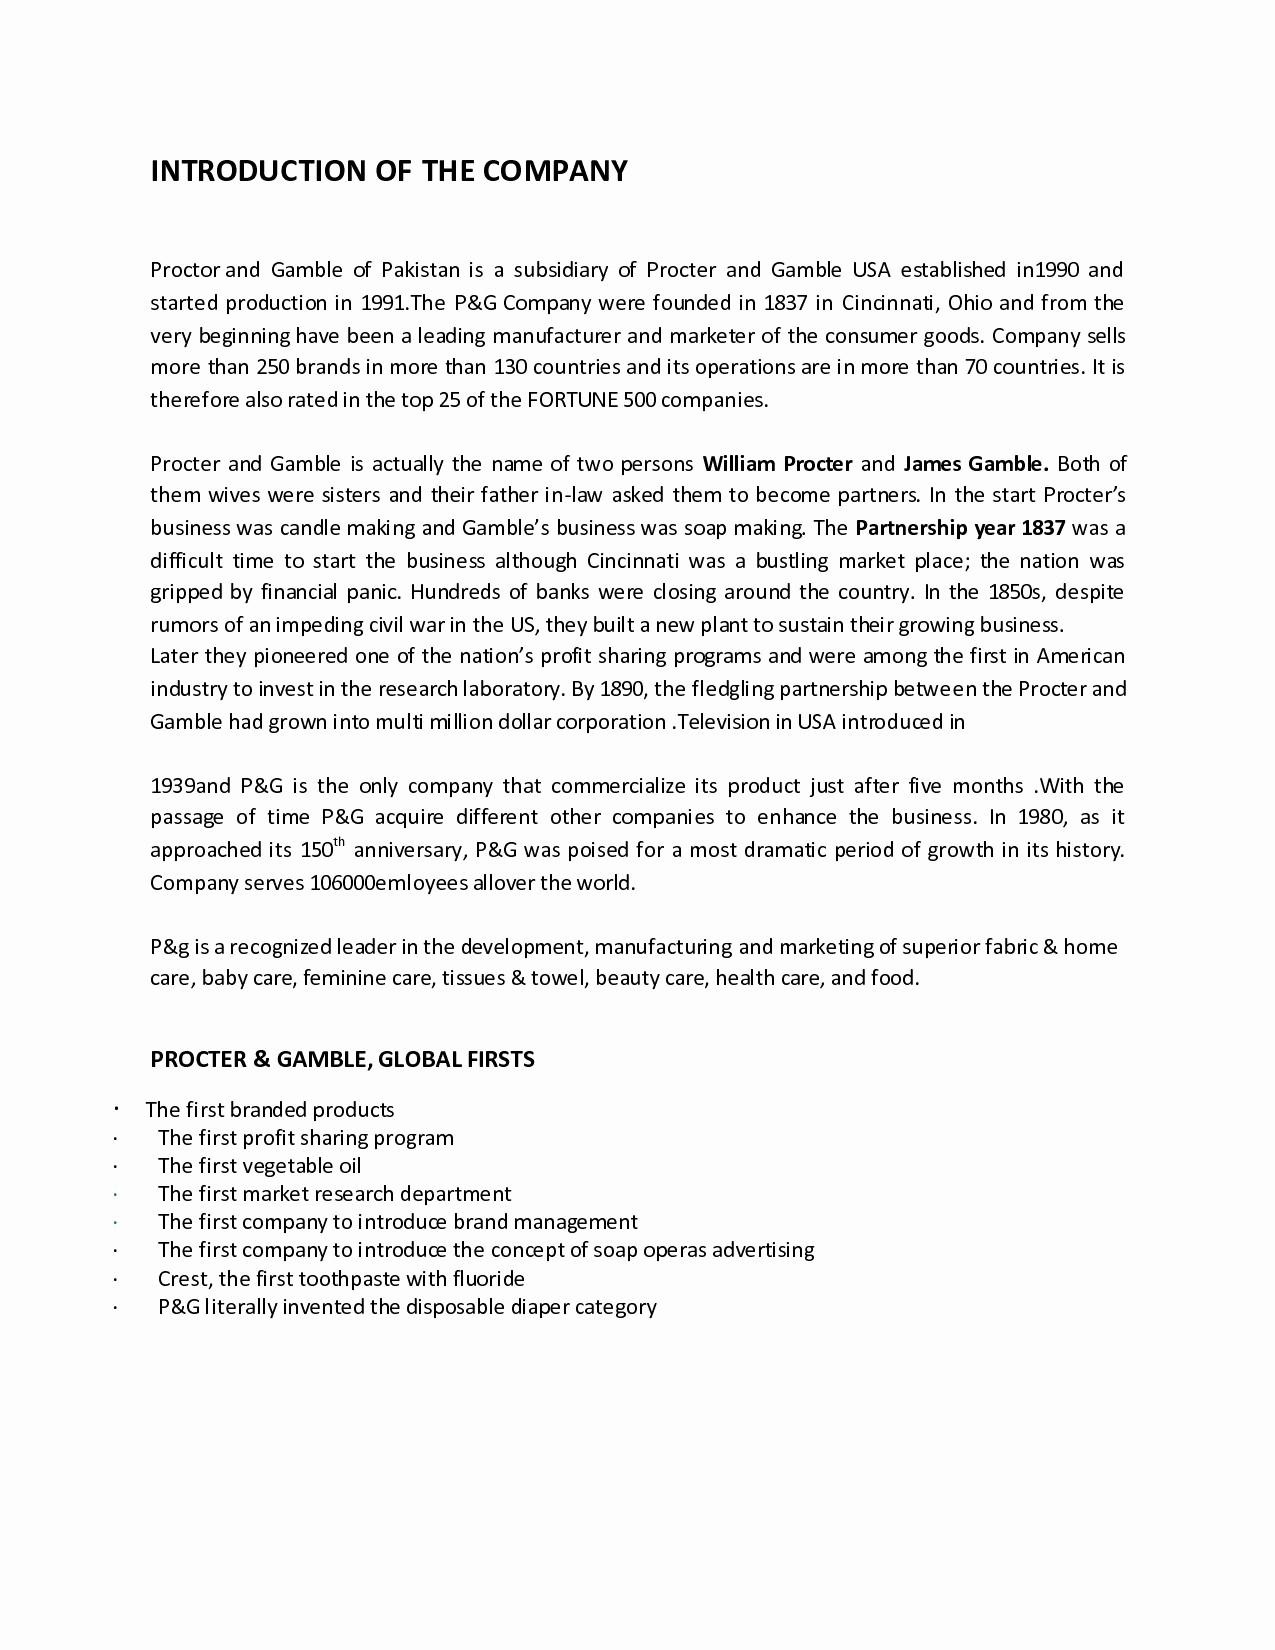 Electronic Cover Letter Template - Sample Email Cover Letter for Business Proposal